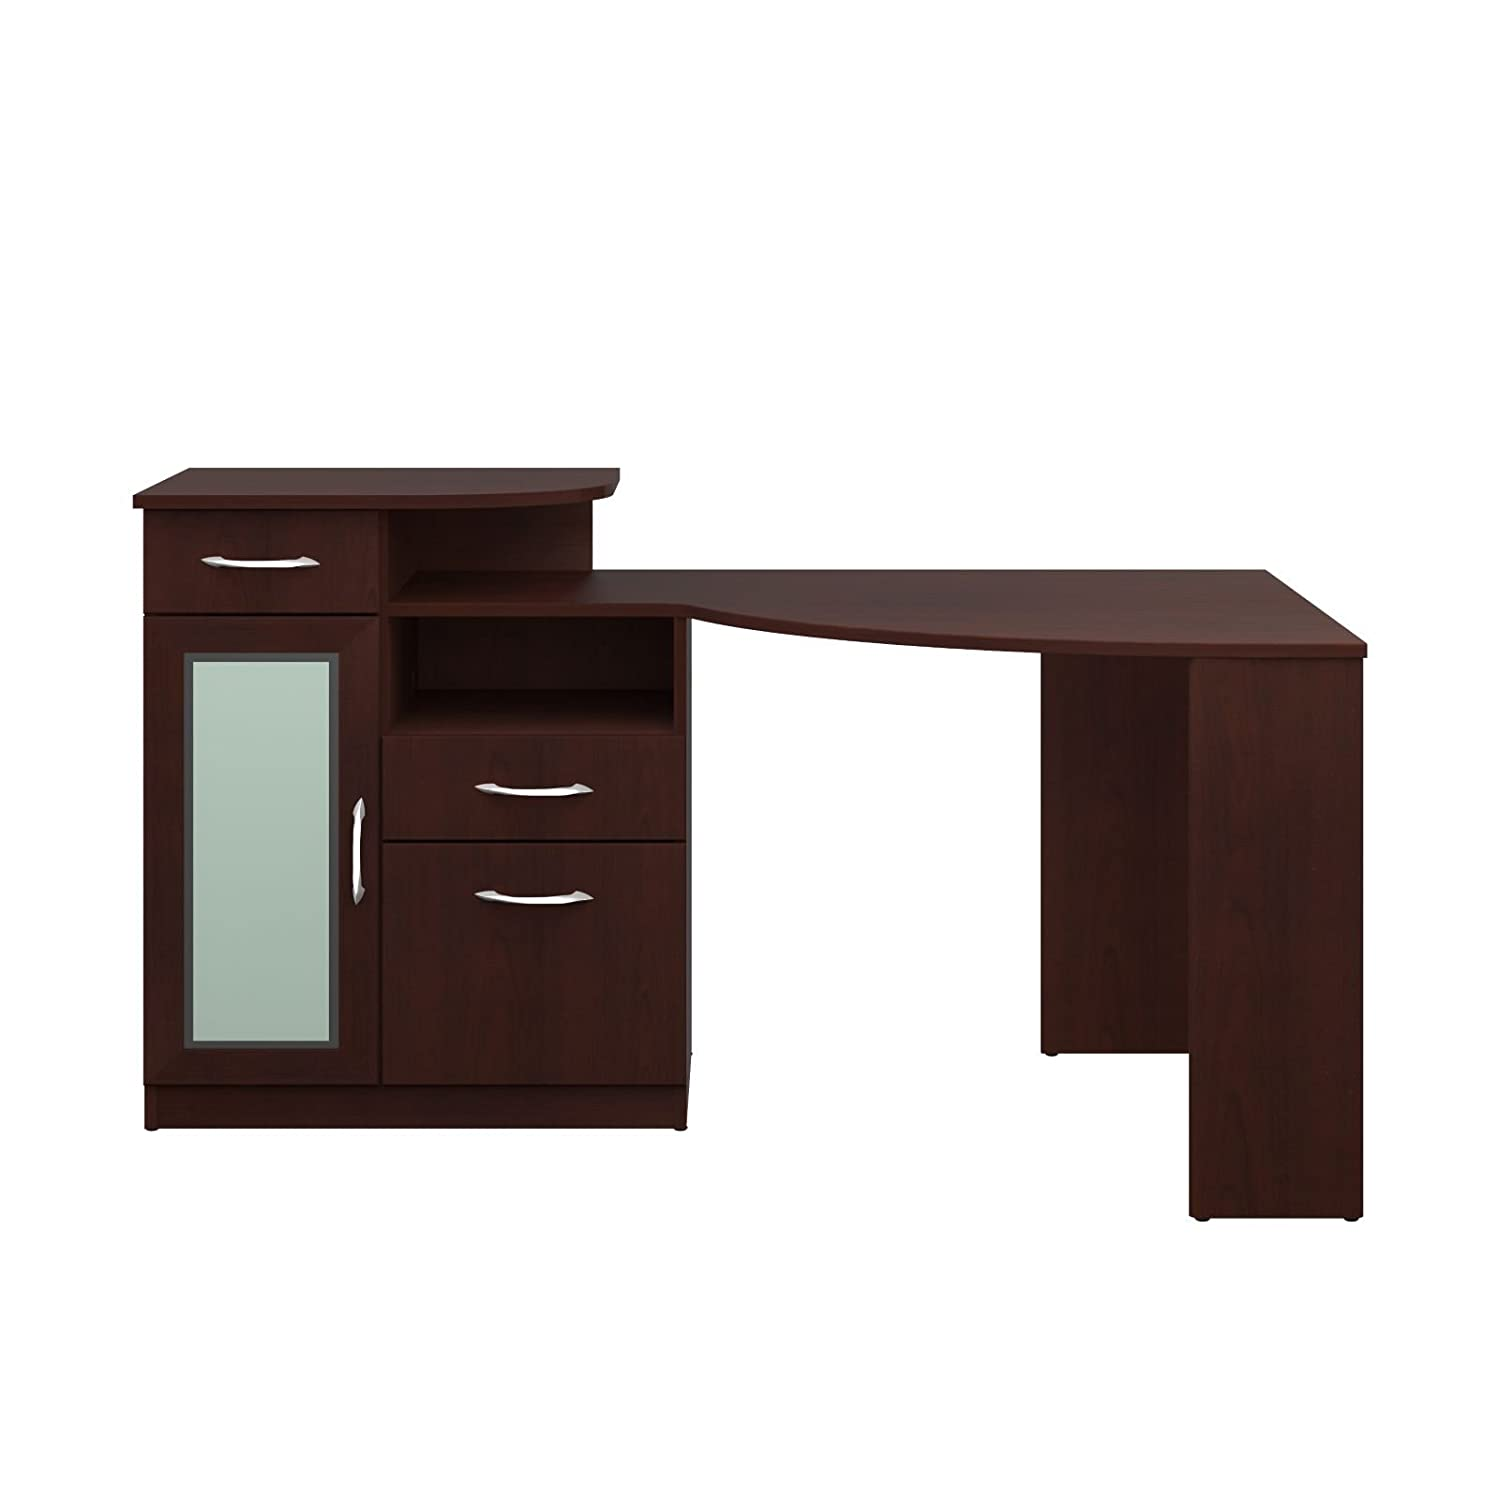 Amazon.com: Bush Furniture Vantage Corner Desk, Harvest Cherry: Kitchen U0026  Dining